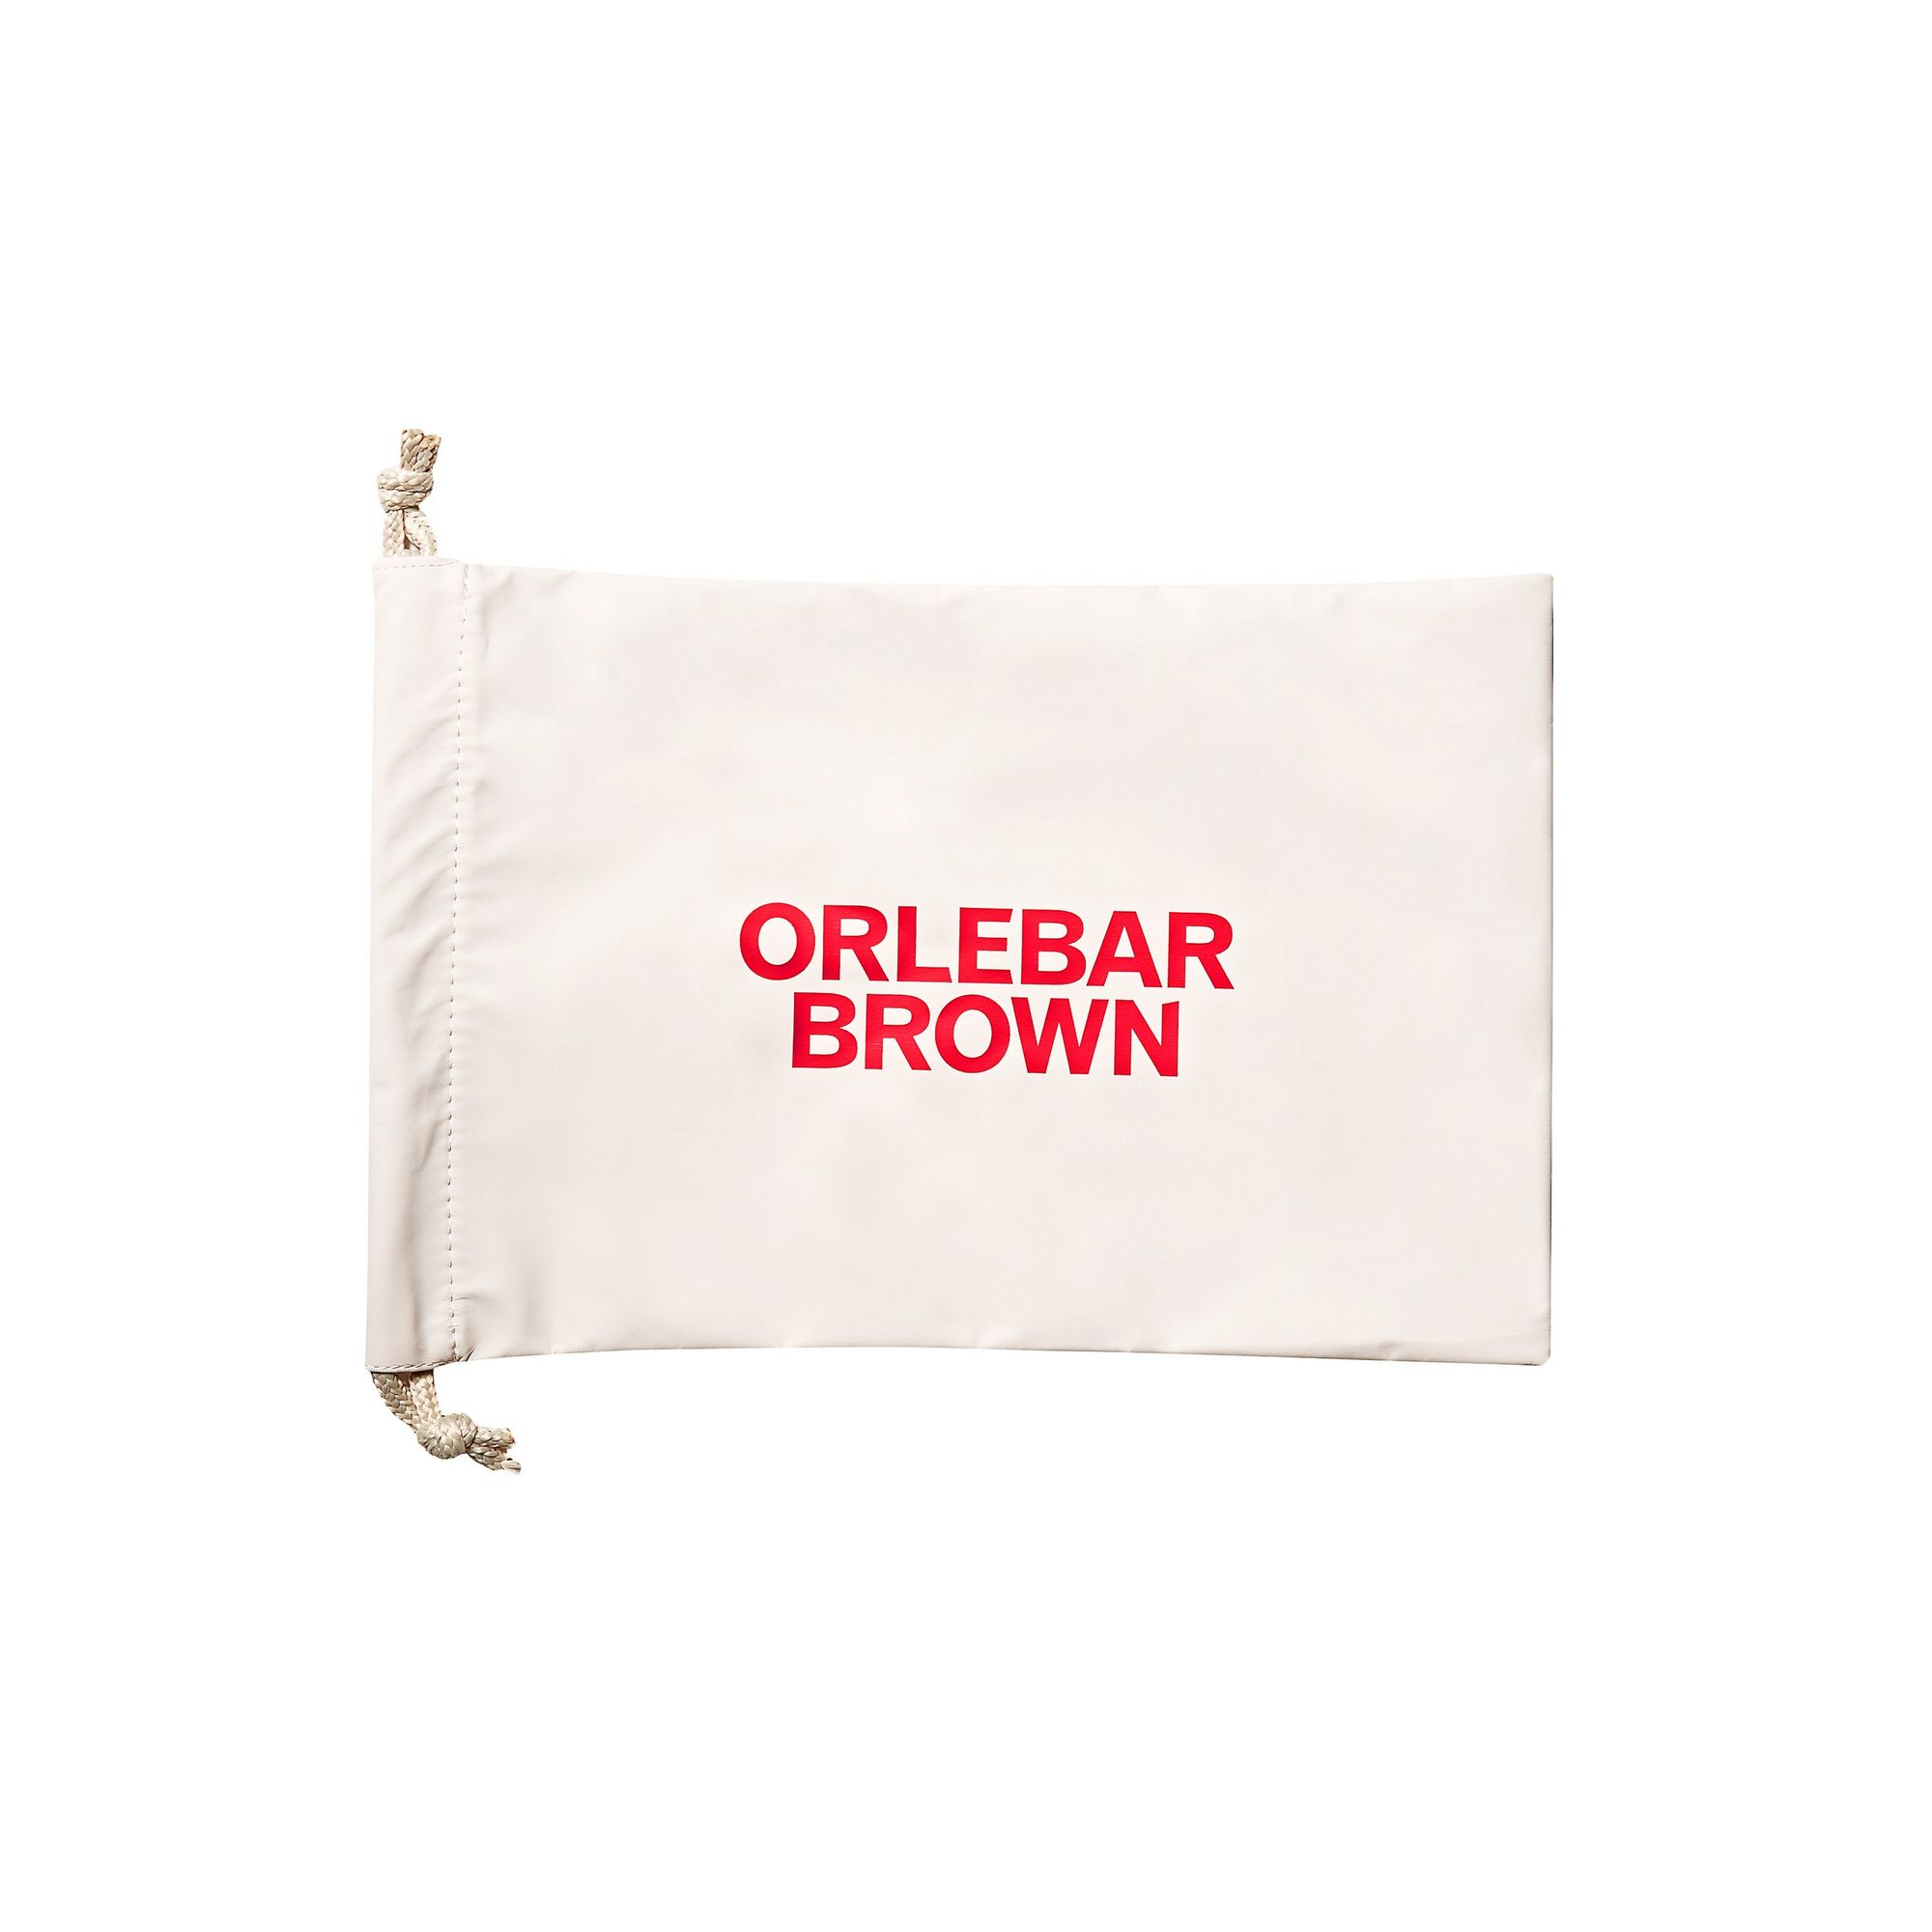 Orlebar Brown Bulldog X